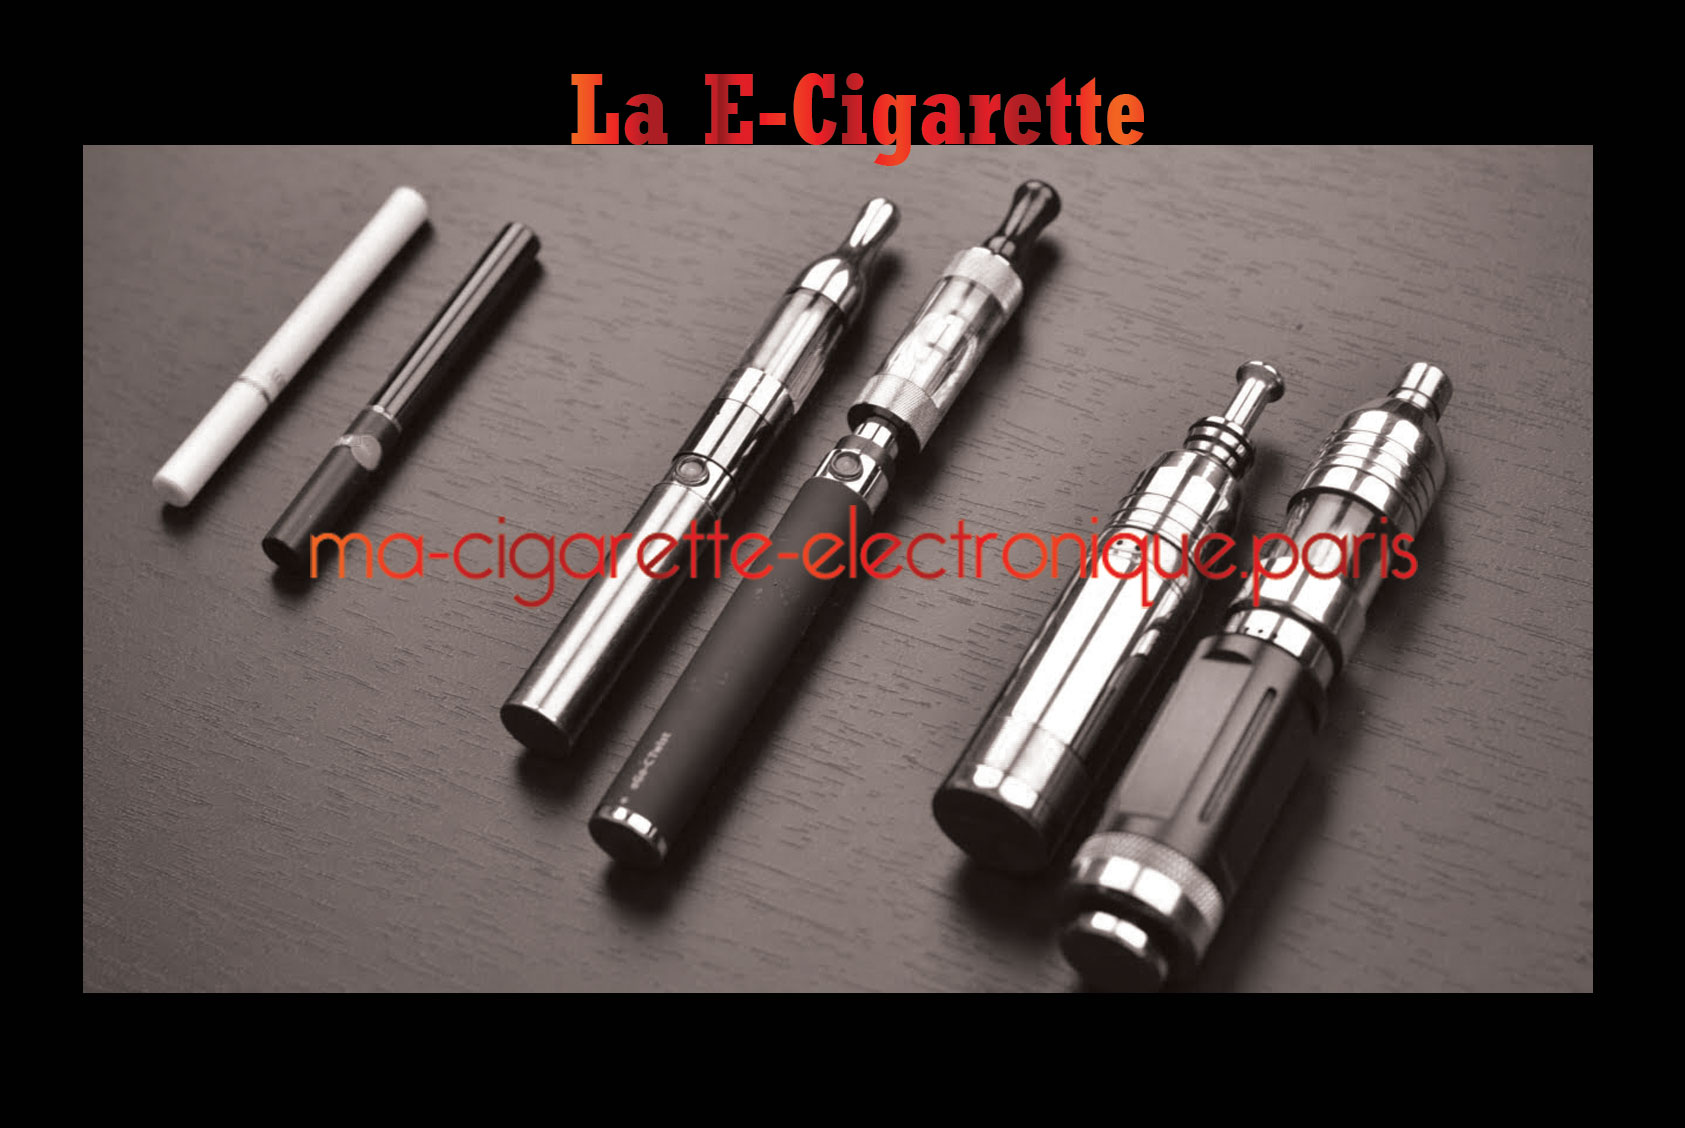 arr ter de fumer et cigarette lectronique cigarette electronique paris. Black Bedroom Furniture Sets. Home Design Ideas